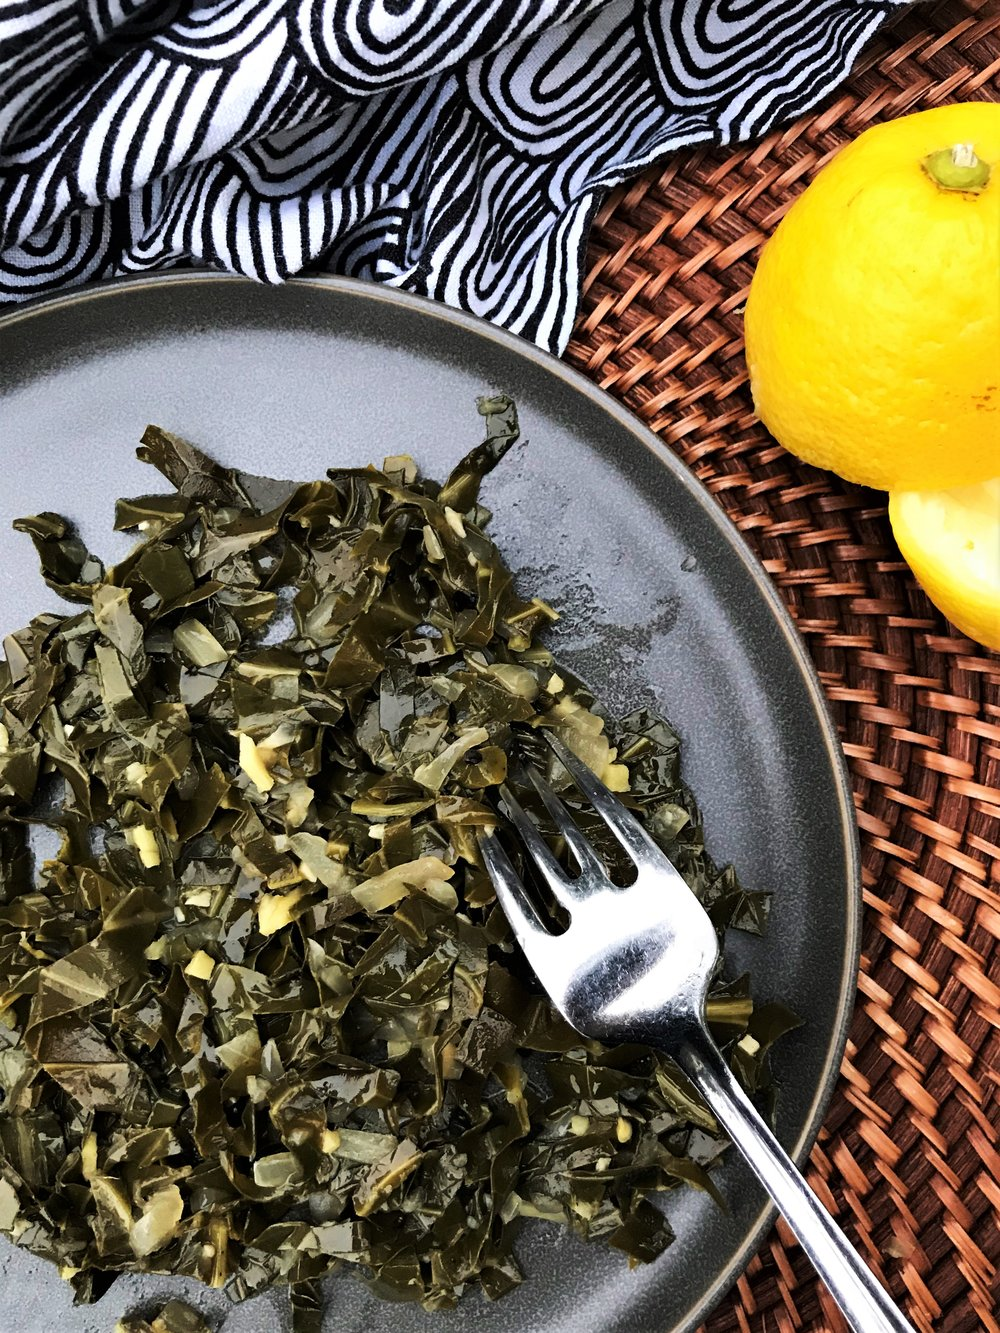 Digging in to my Spiced Collard Greens. (Yum!)